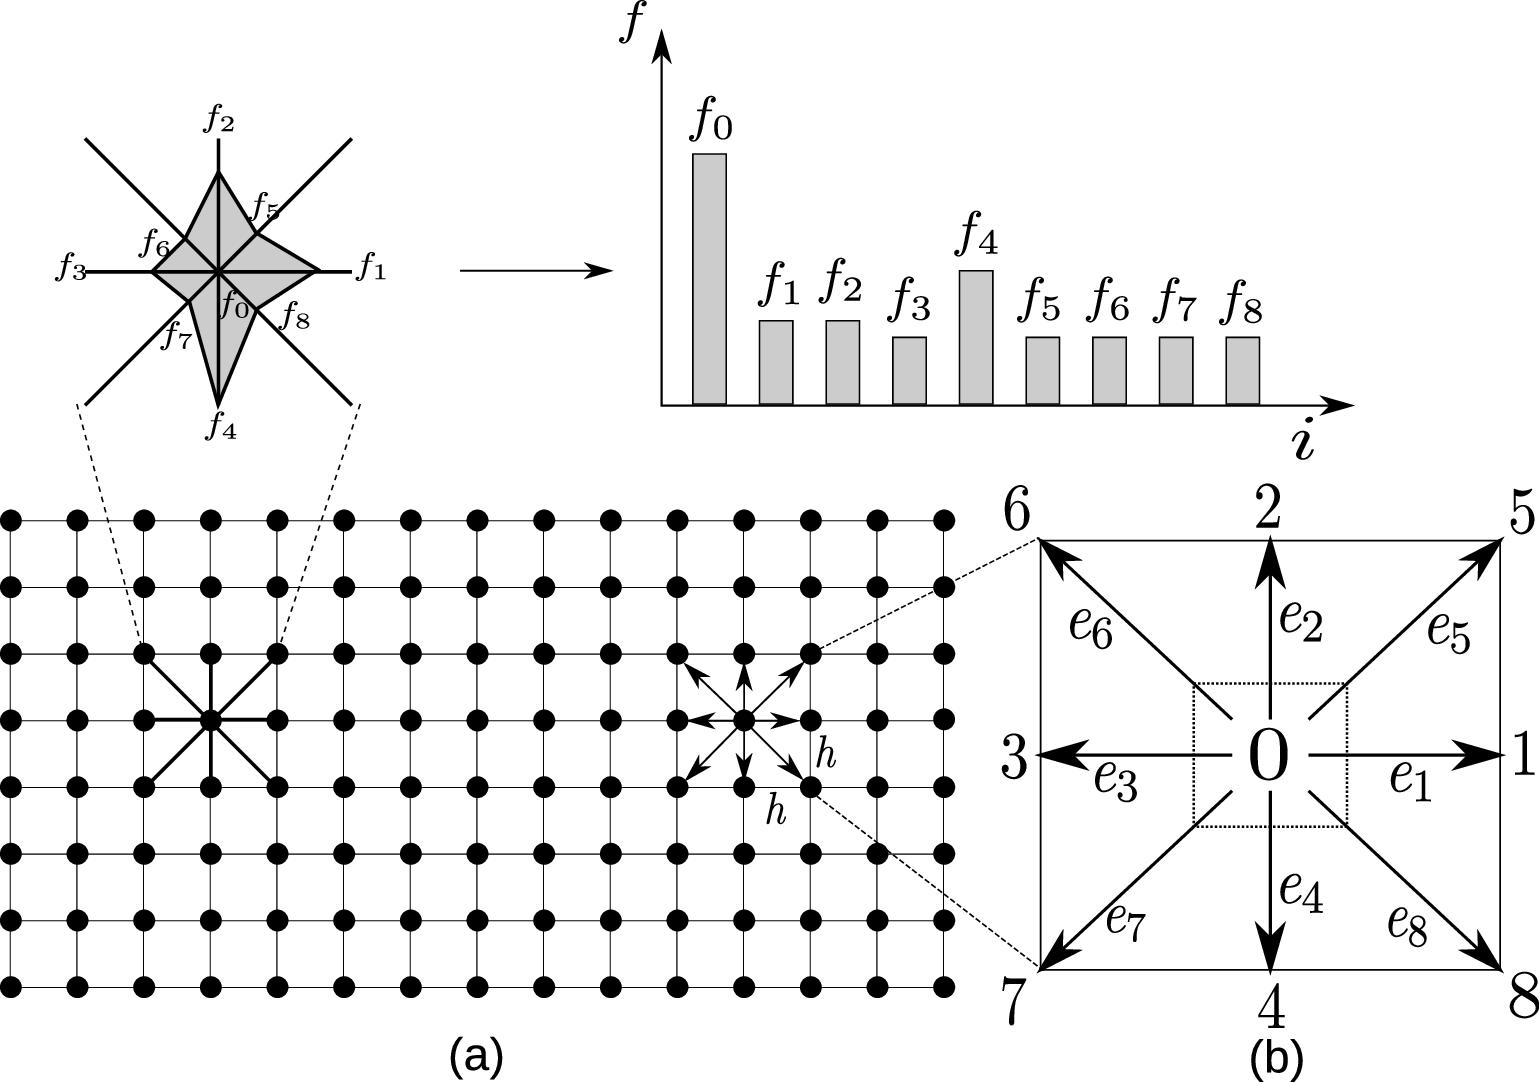 The Lattice Boltzmann discretization and D2Q9 scheme: (a) a standard LB lattice; (b) D2Q9 model